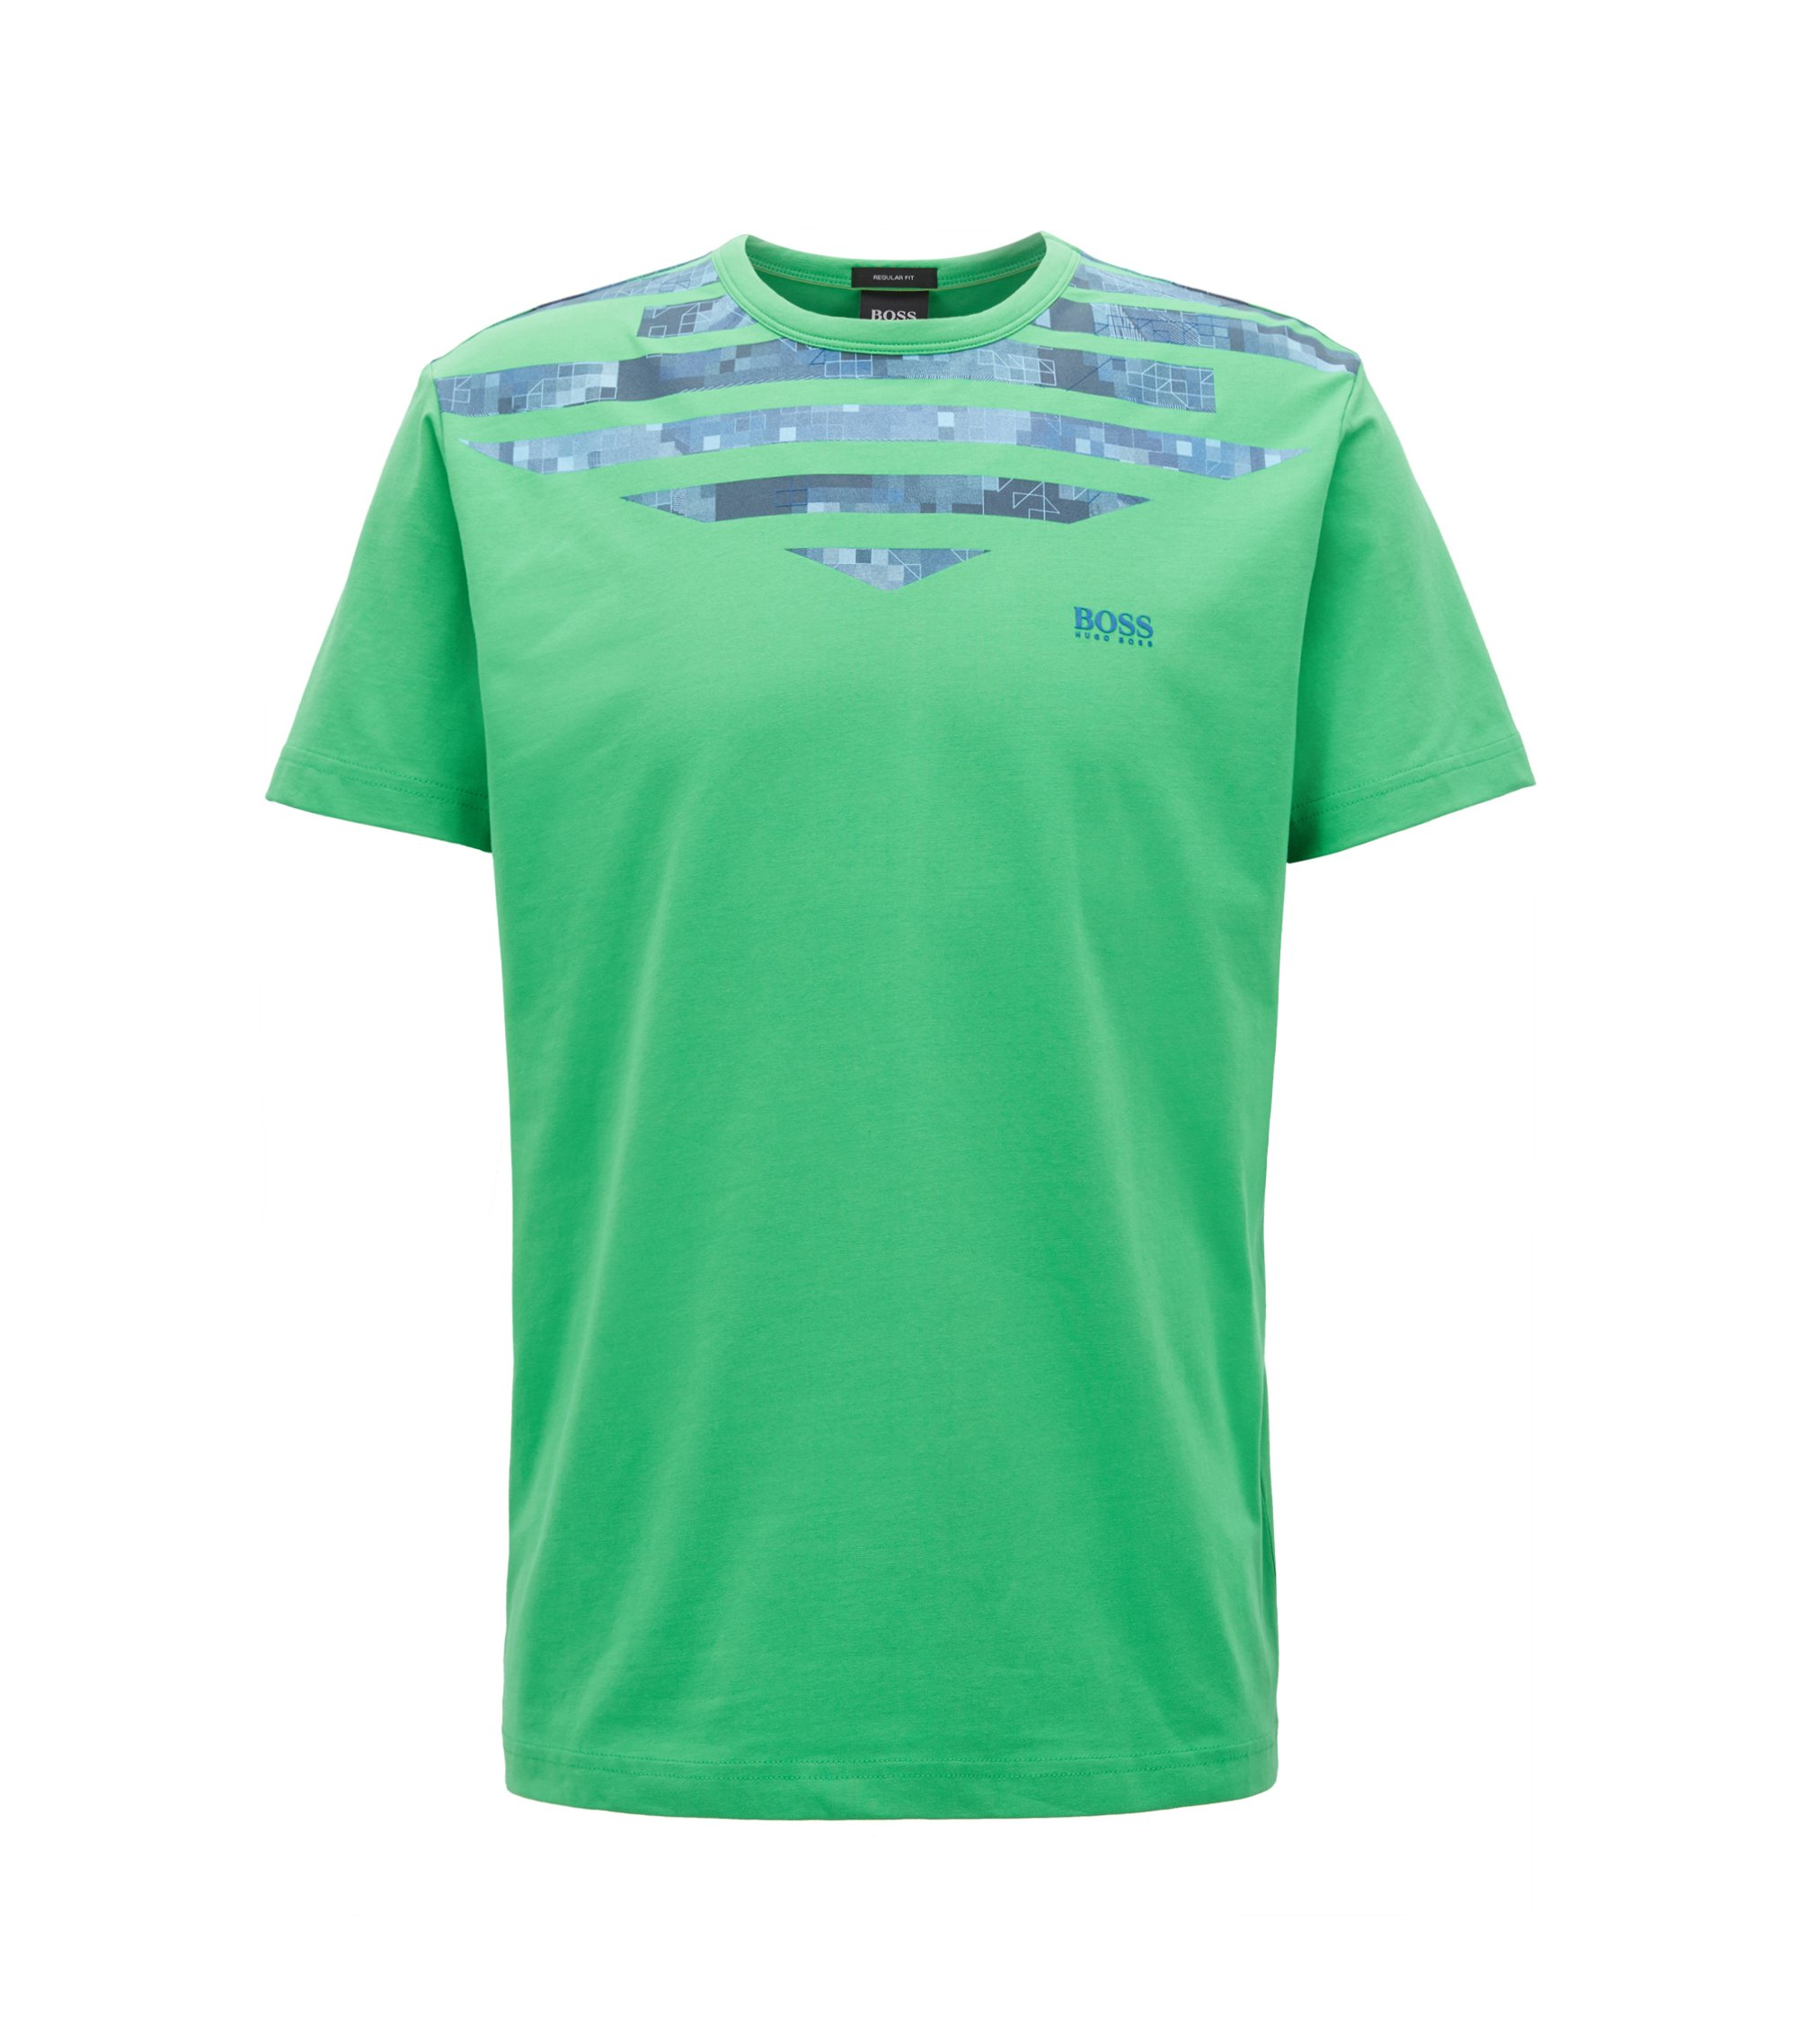 Stretch Cotton Graphic T-Shirt | Tee 10, Green